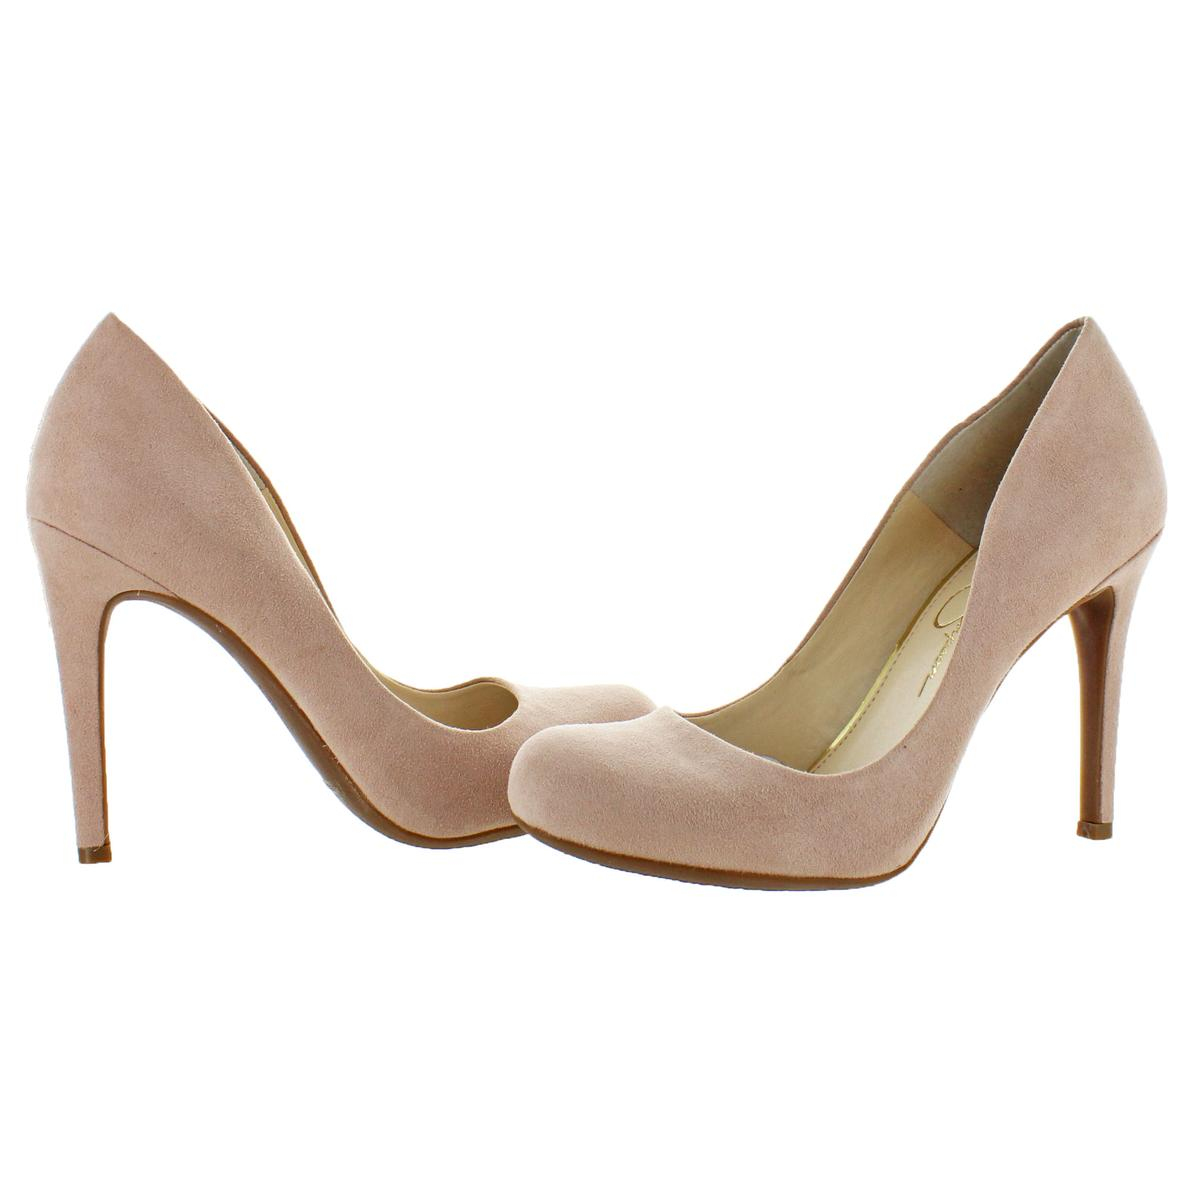 Jessica-Simpson-Women-039-s-Calie-Round-Toe-Classic-Heels-Pumps-Shoes thumbnail 6